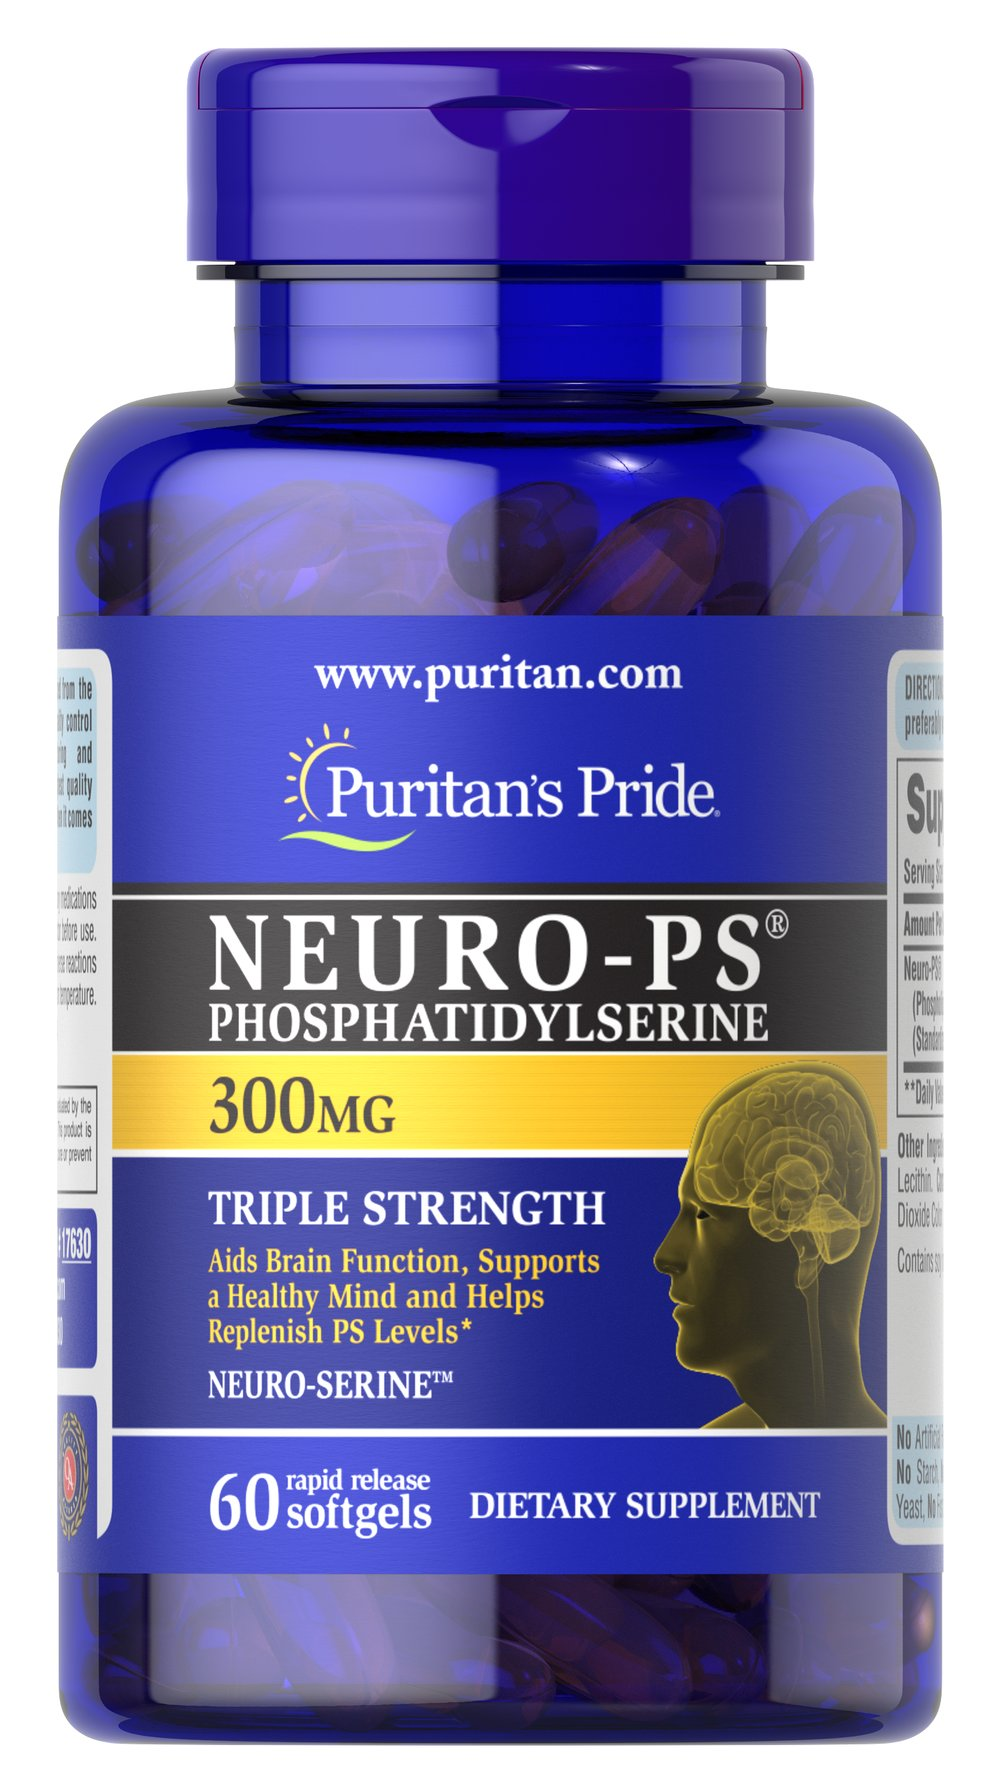 Puritan's Pride Neuro-PS 300 mg (Phosphatidylserine)-60 Softgels